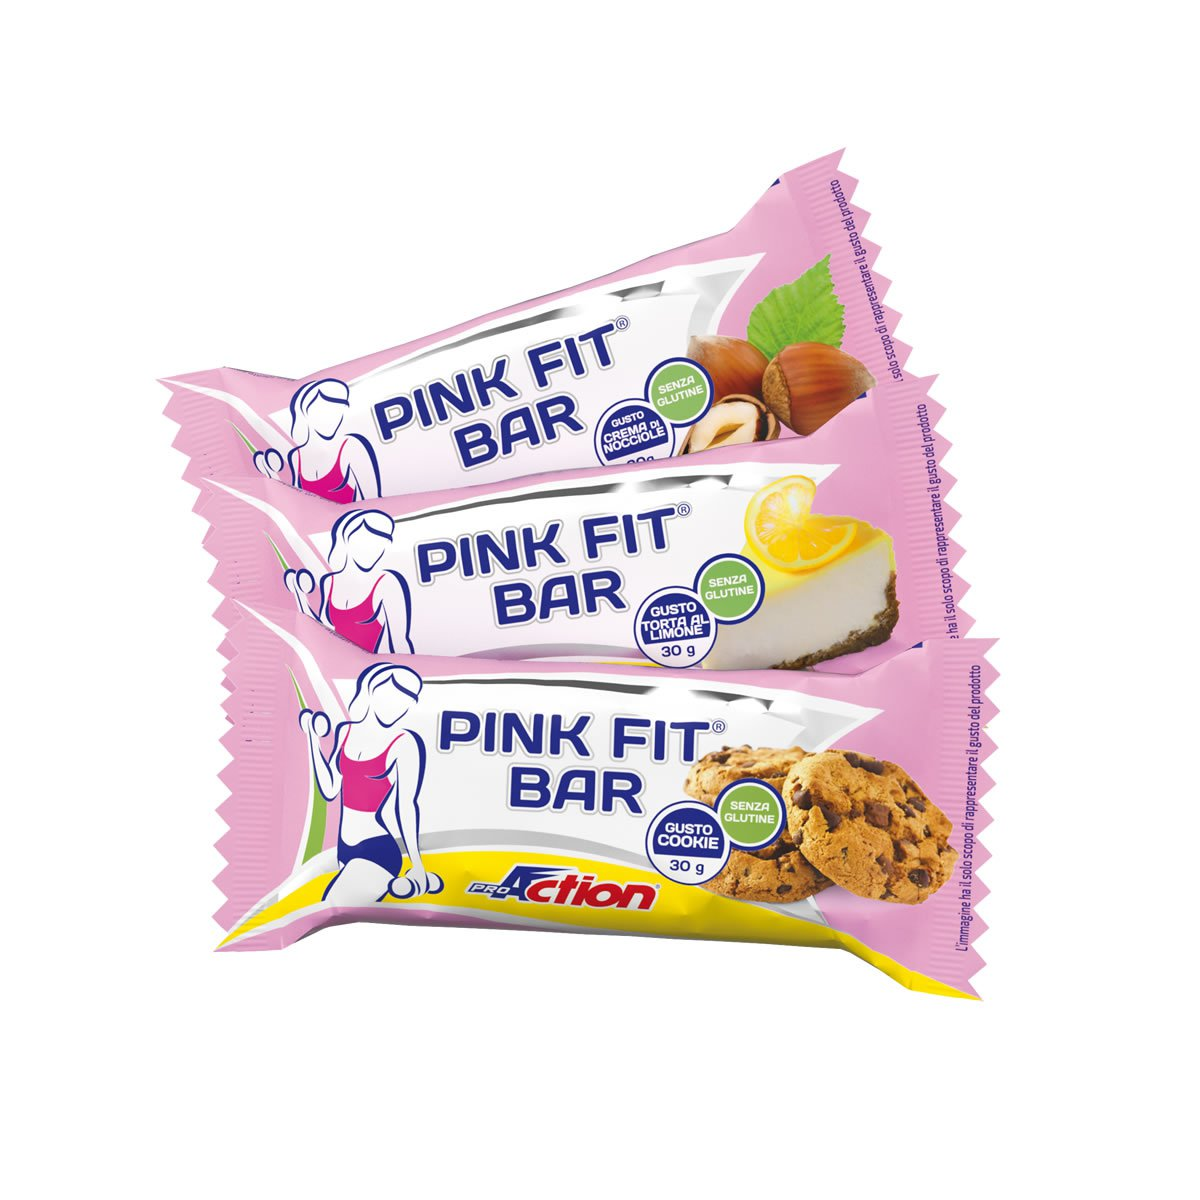 Pink Fit Bar